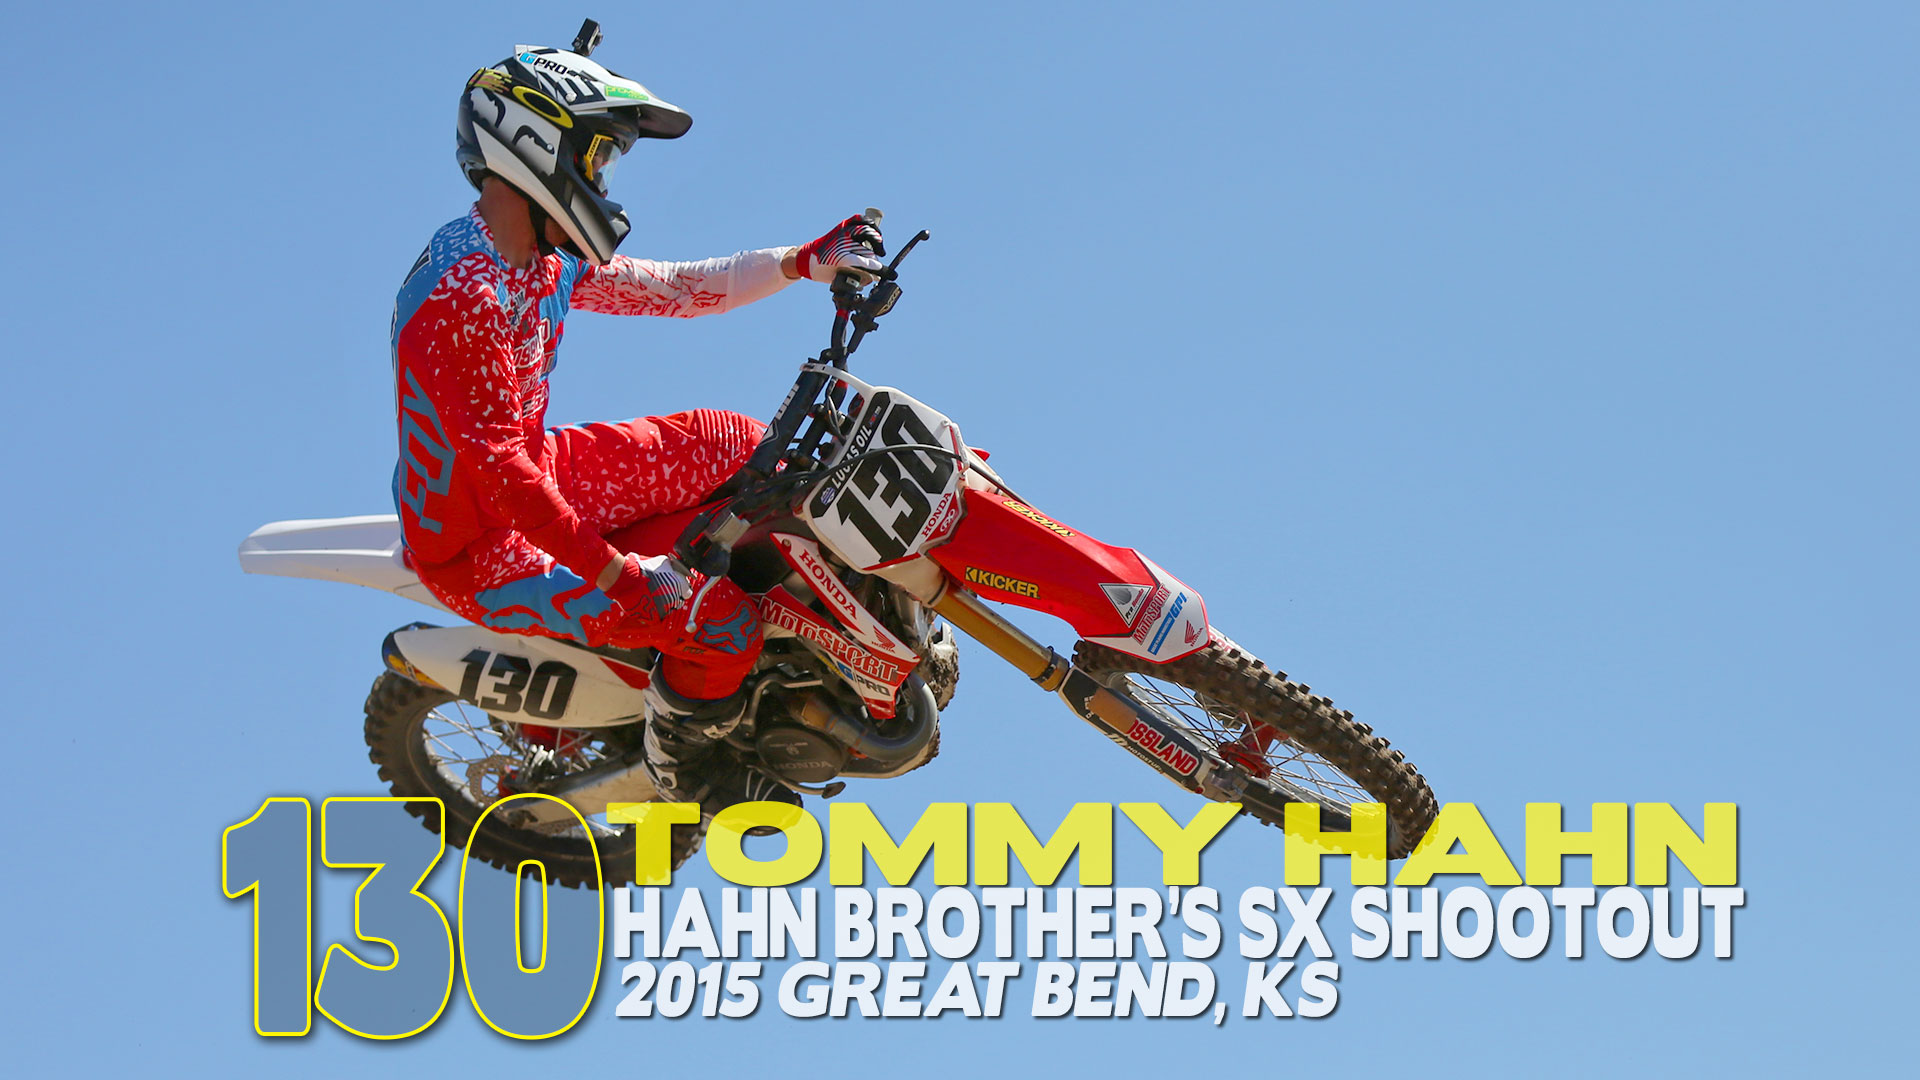 HELMET CAM: Tommy Hahn | Hahn Brothers SX Shootout - Glory Hog Media